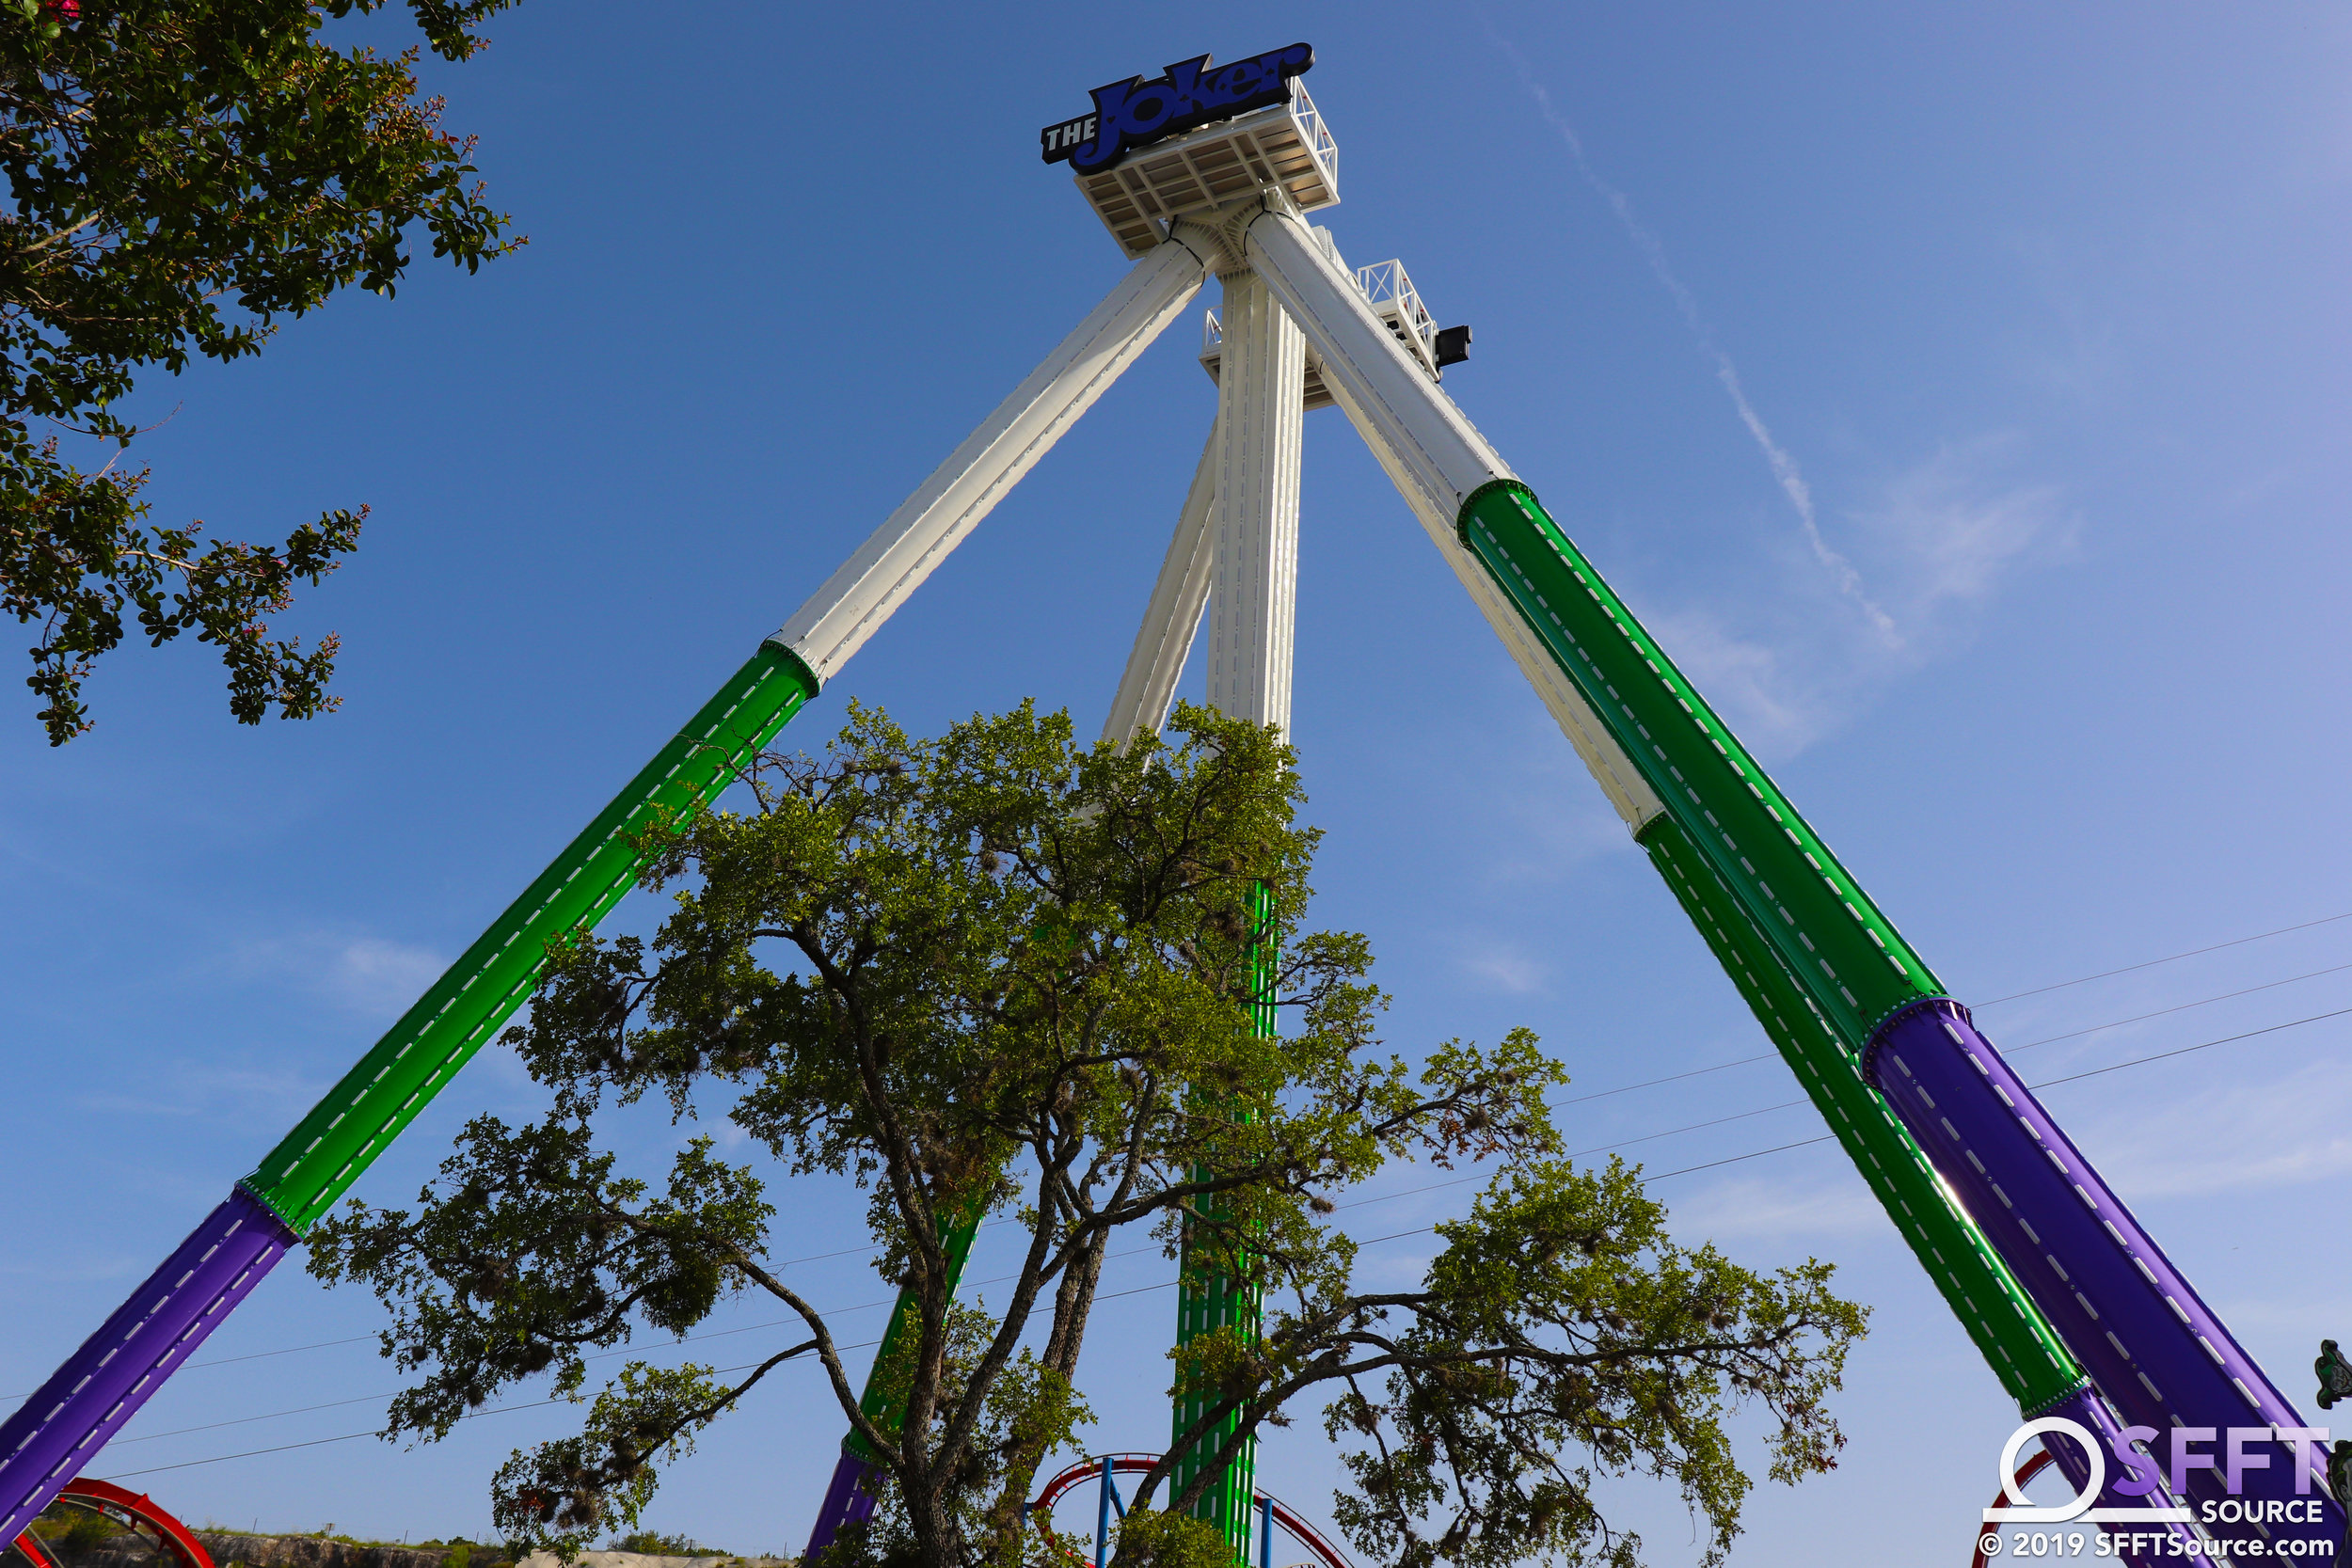 The Joker Carnival of Chaos stands 172 feet tall.